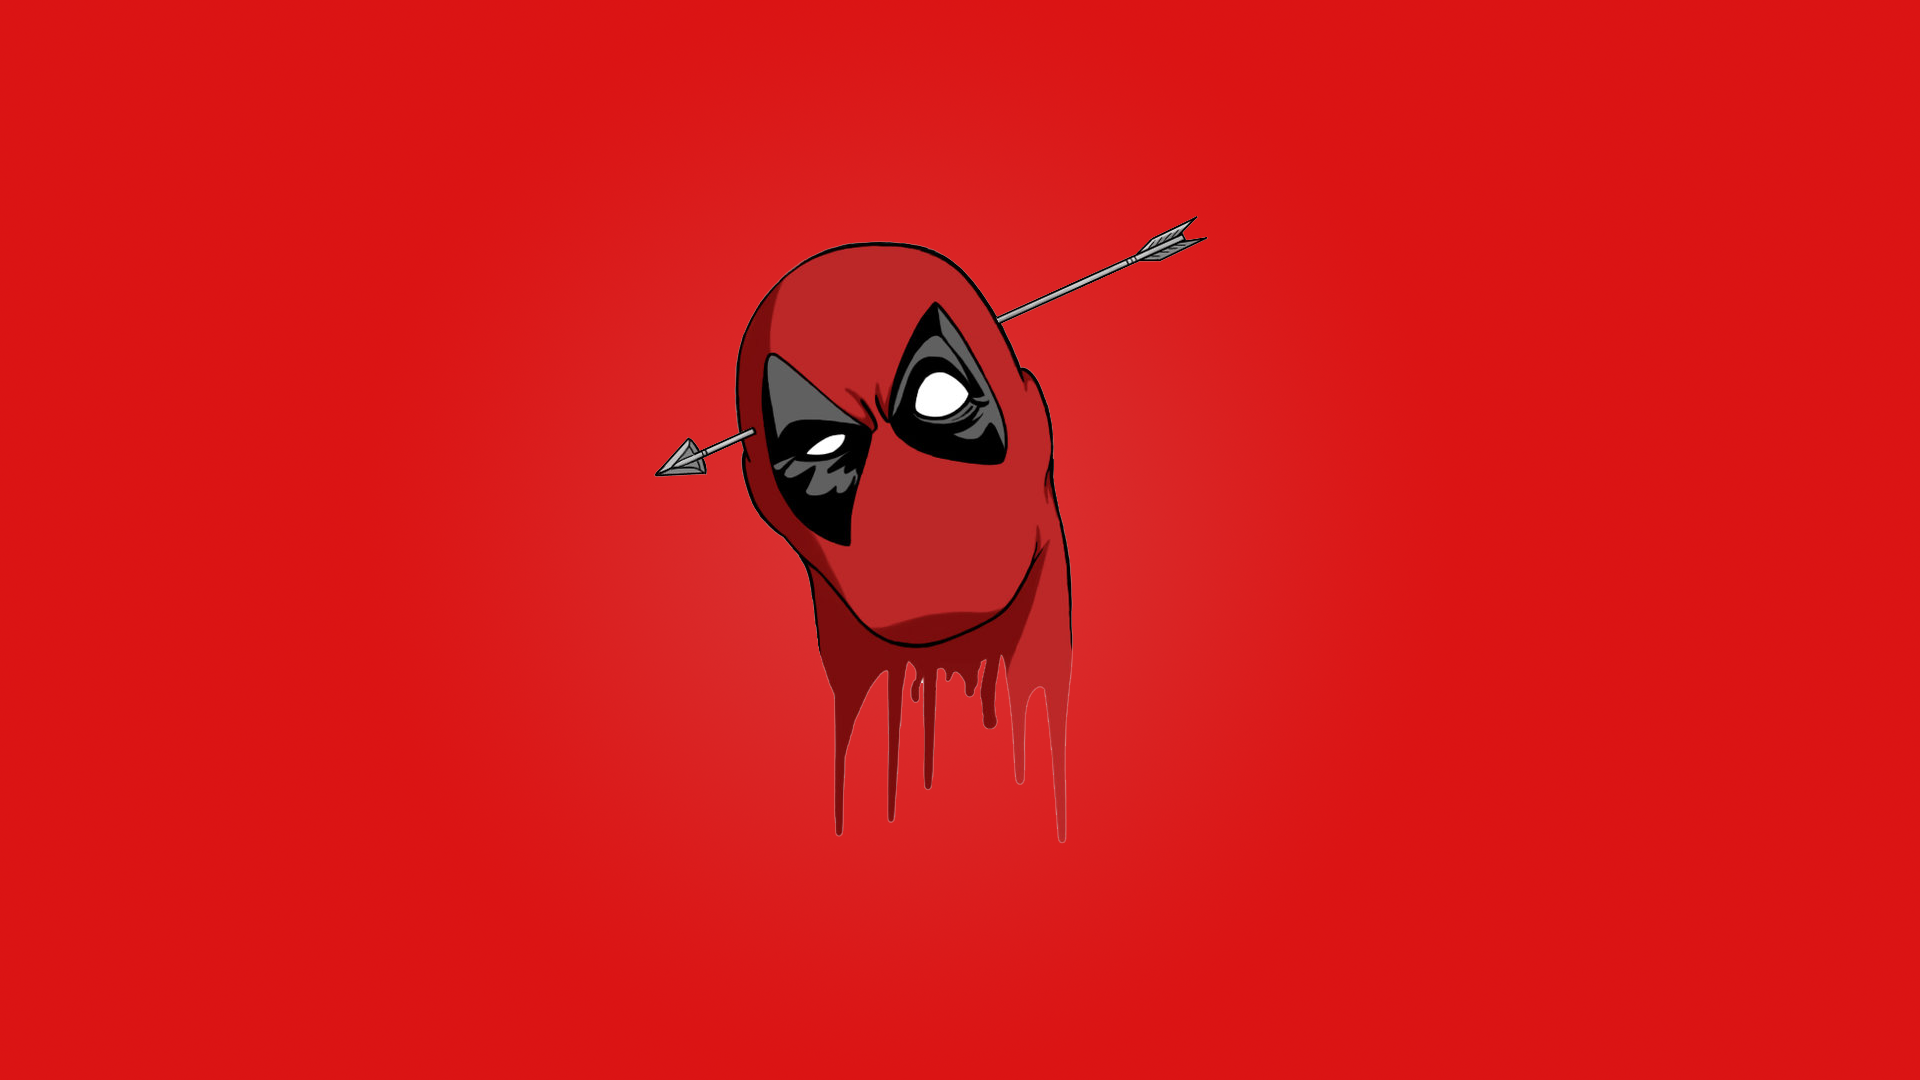 deadpool digital art, hd artist, 4k wallpapers, images, backgrounds